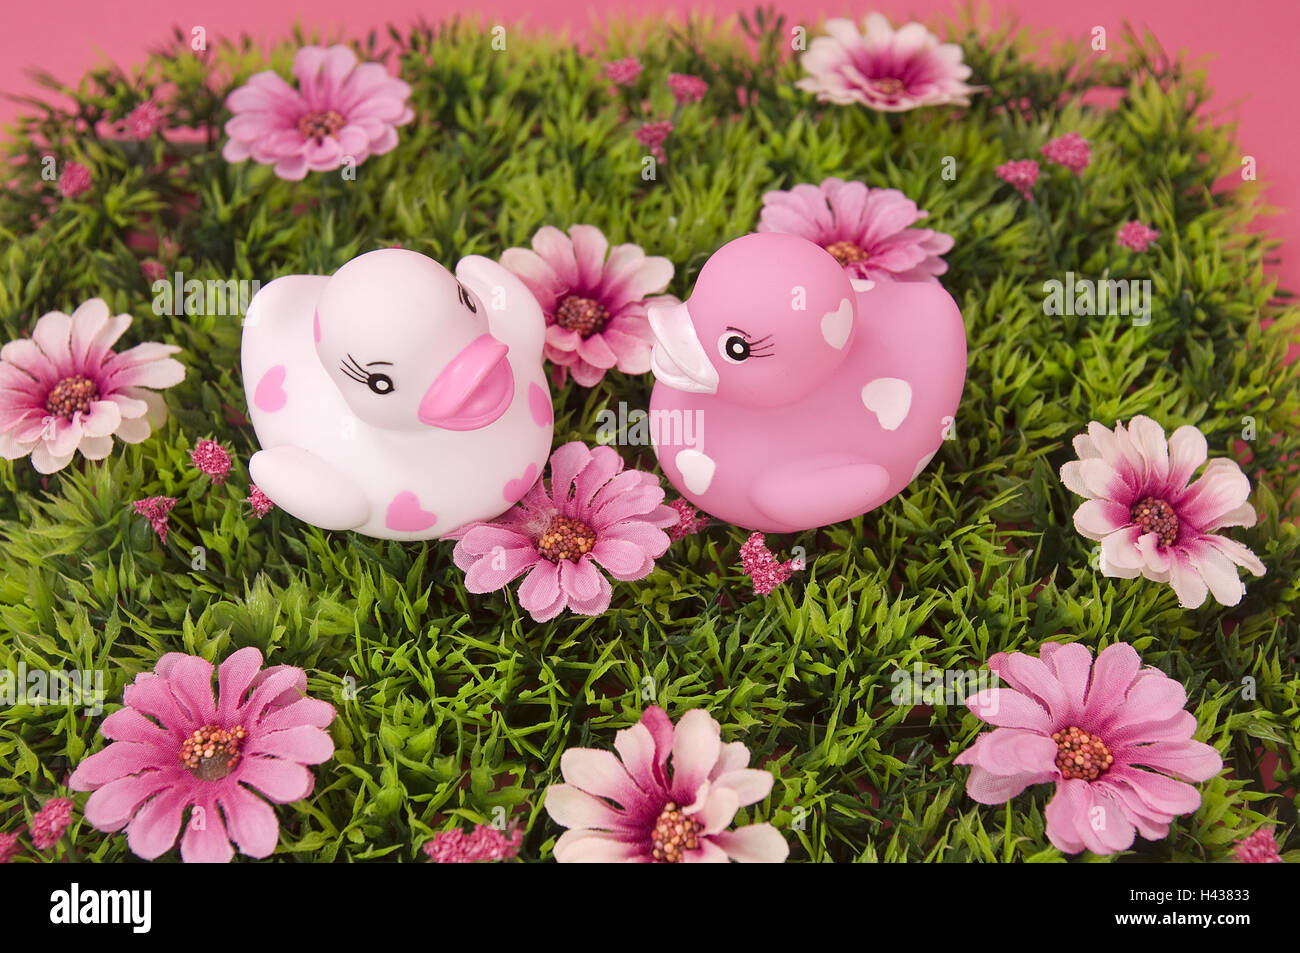 Meadow Pink Stock Photos Meadow Pink Stock Images Alamy